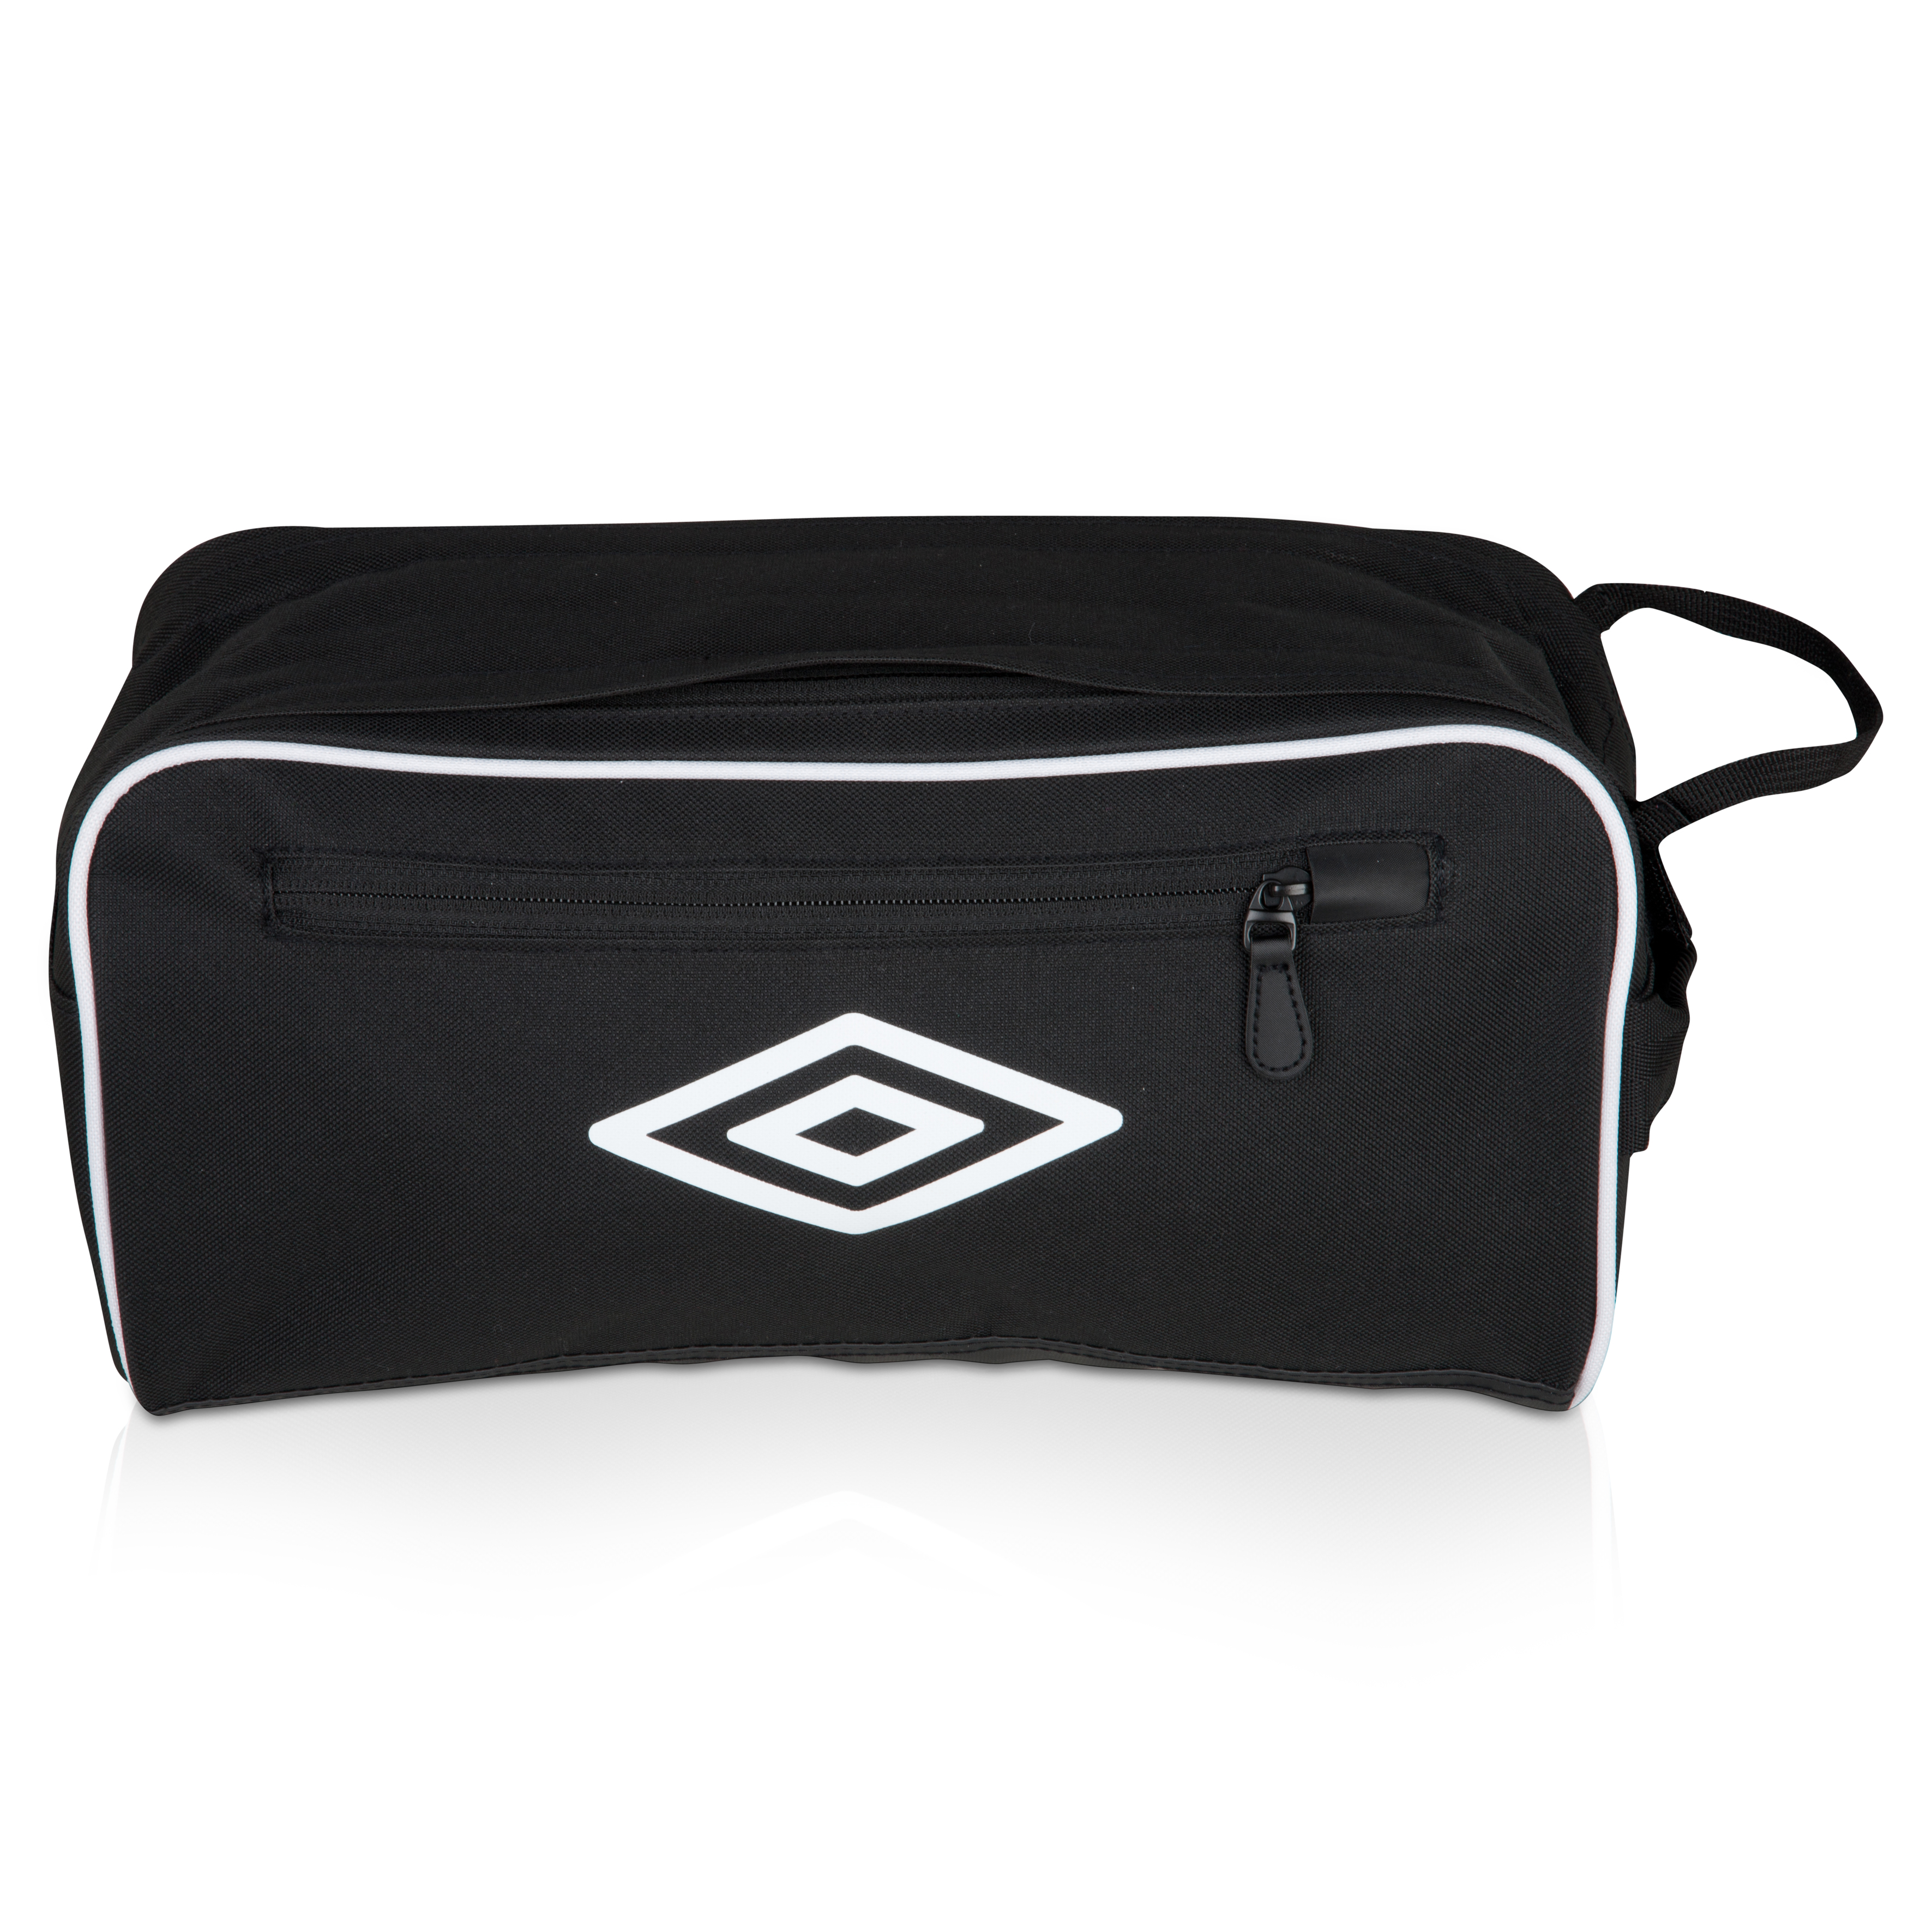 Umbro Boot Bag - Black / White